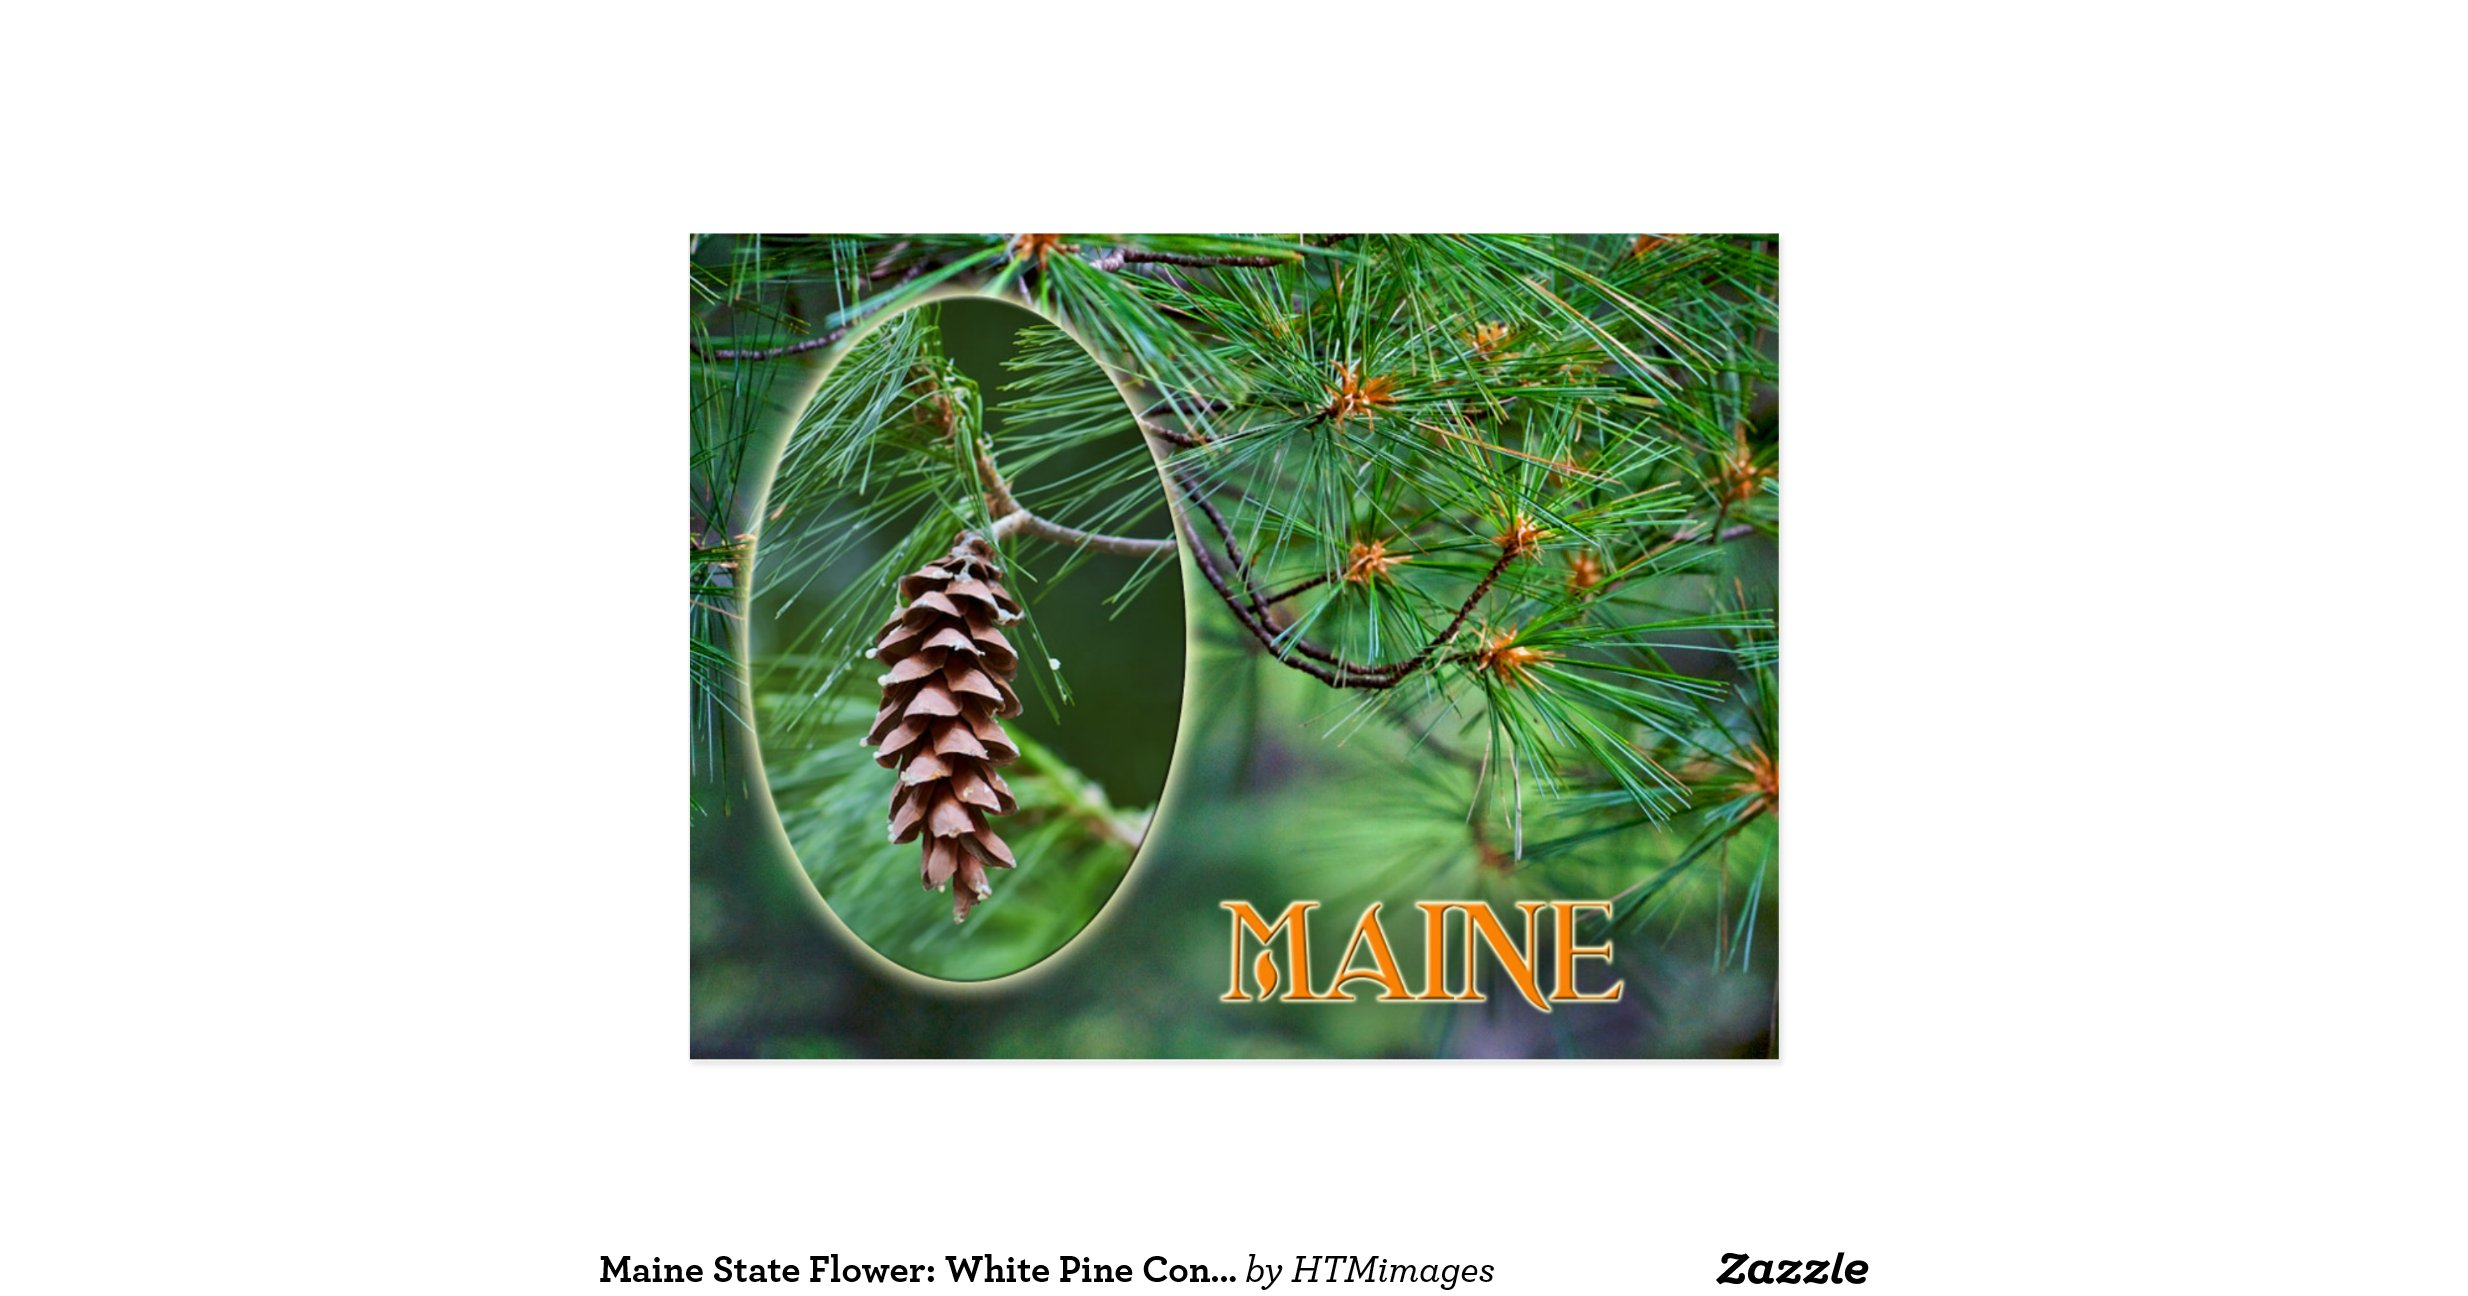 maine state flower white pine cone and tassel postcard r8ed a64dc698a52